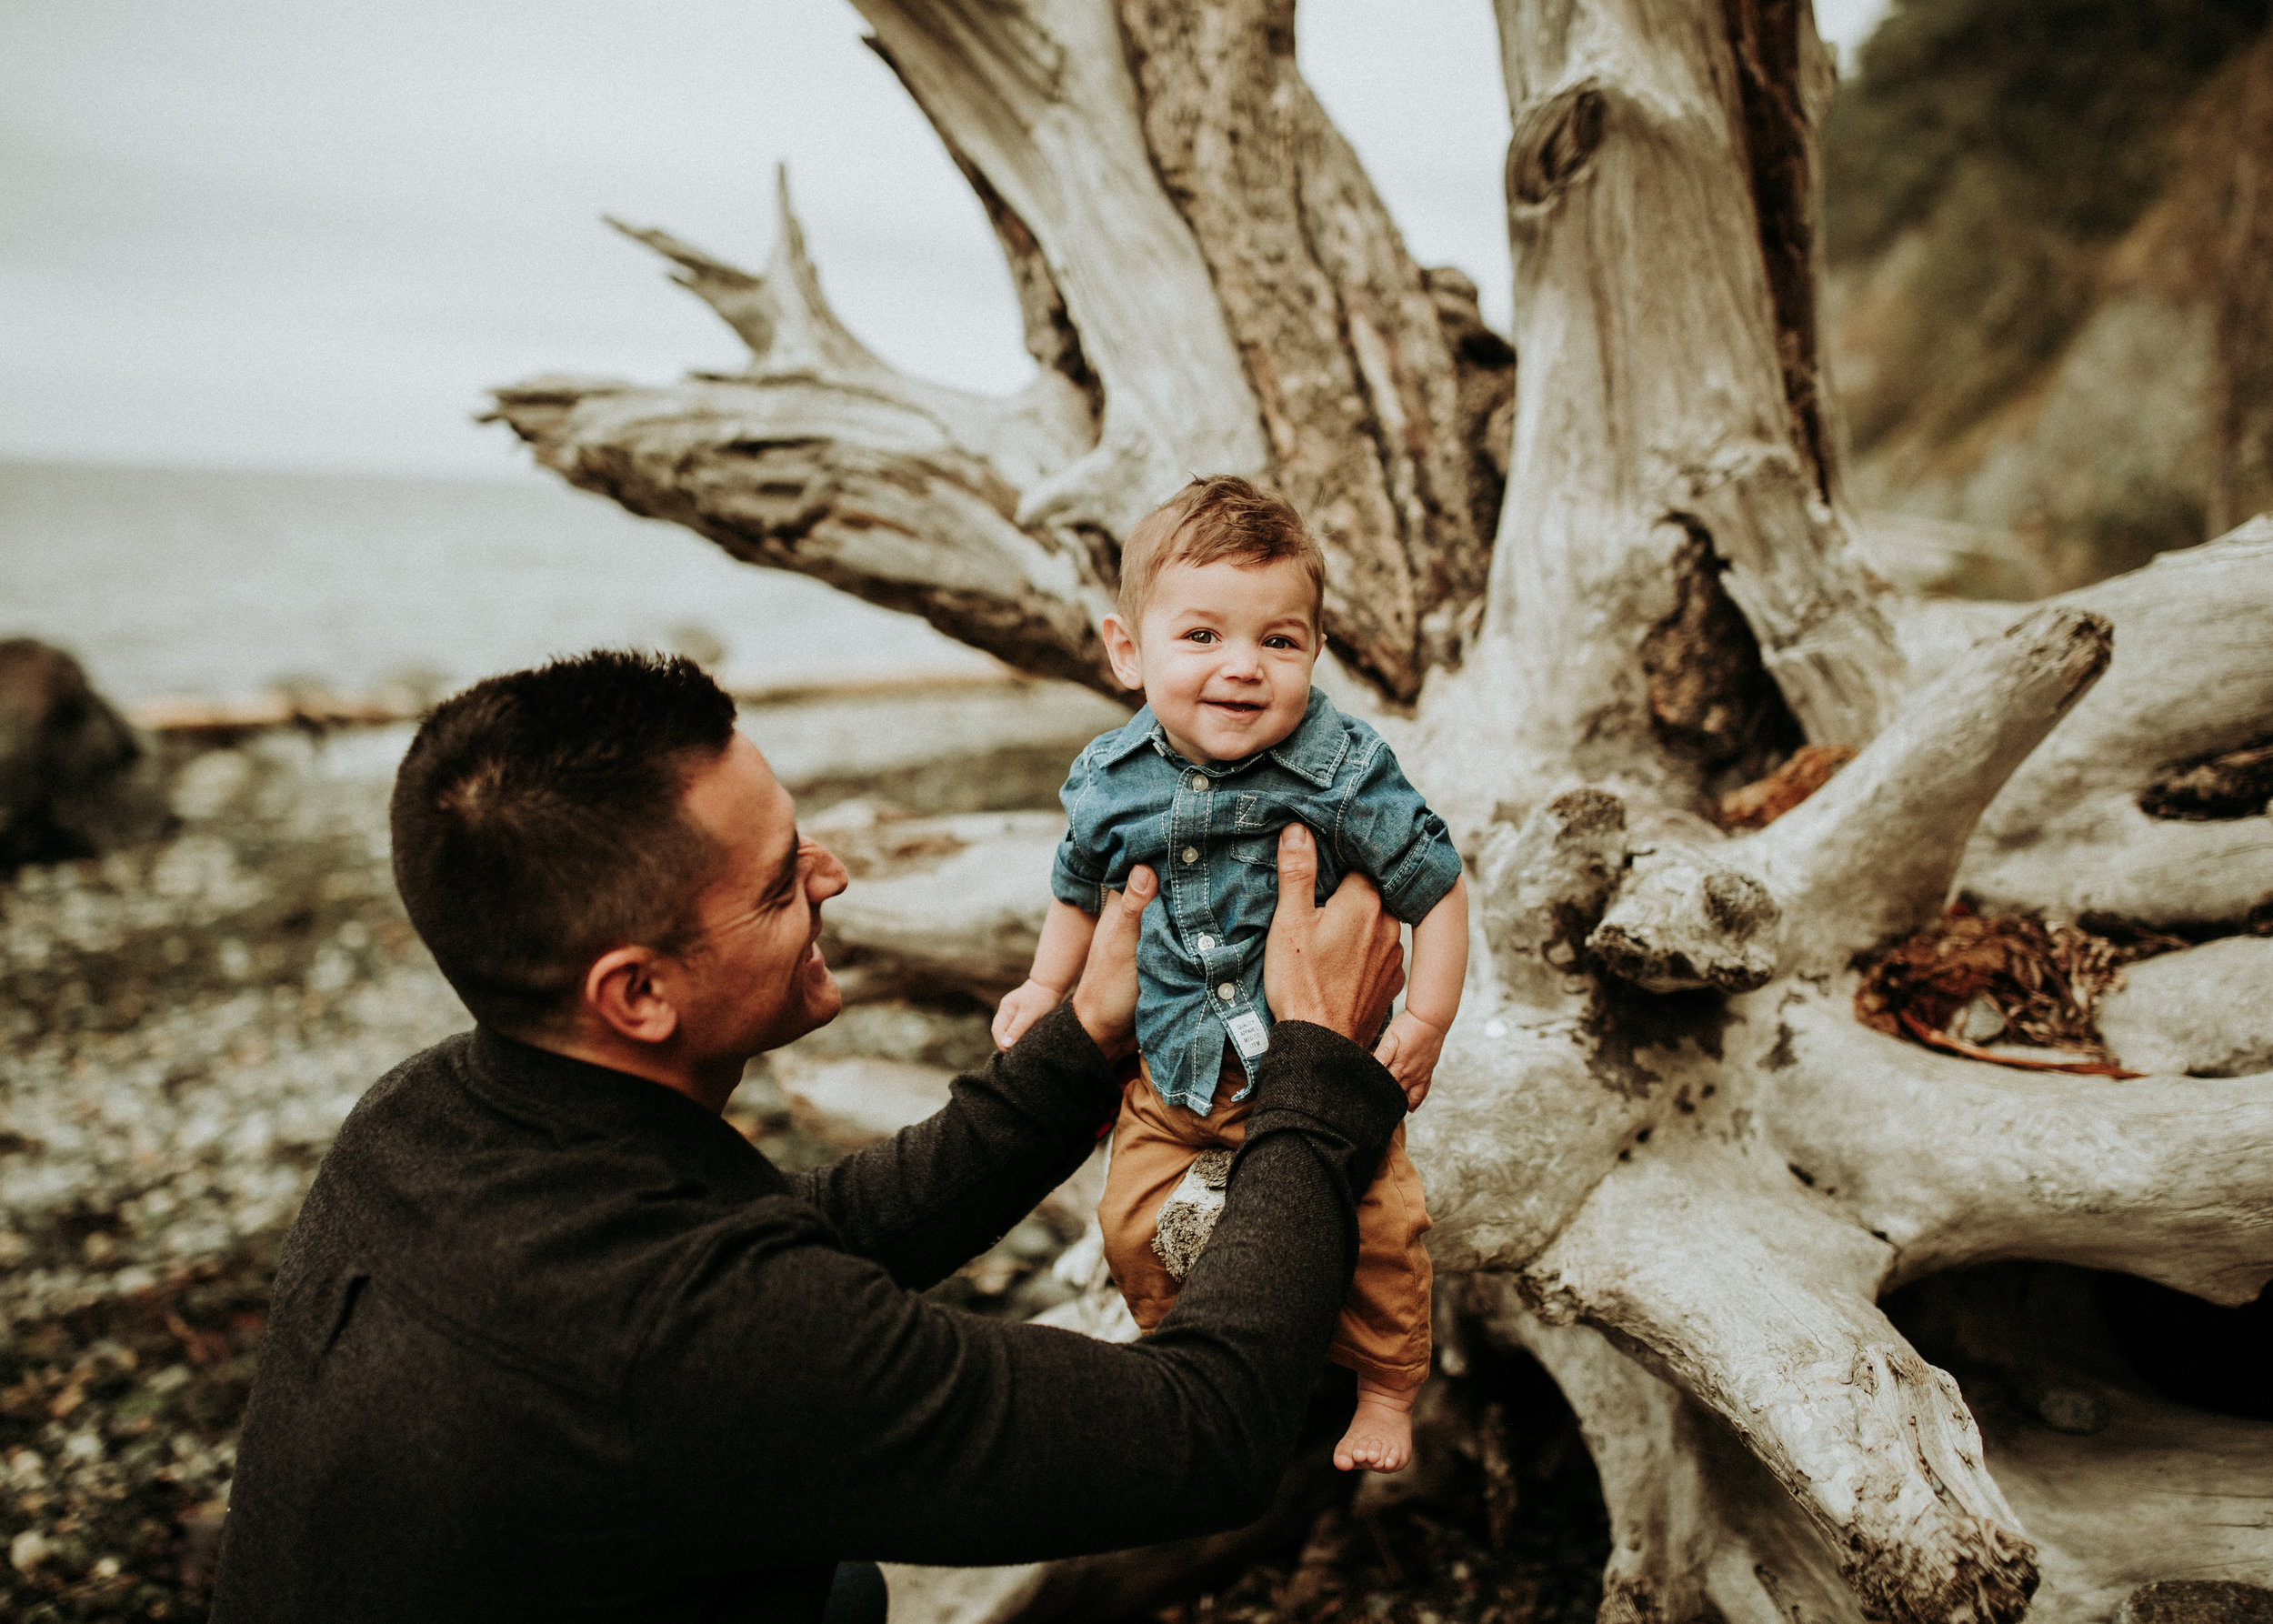 Family-Photographer-Bellingham-WA-Brianne-Bell-Photography-(Pier)-8.jpg